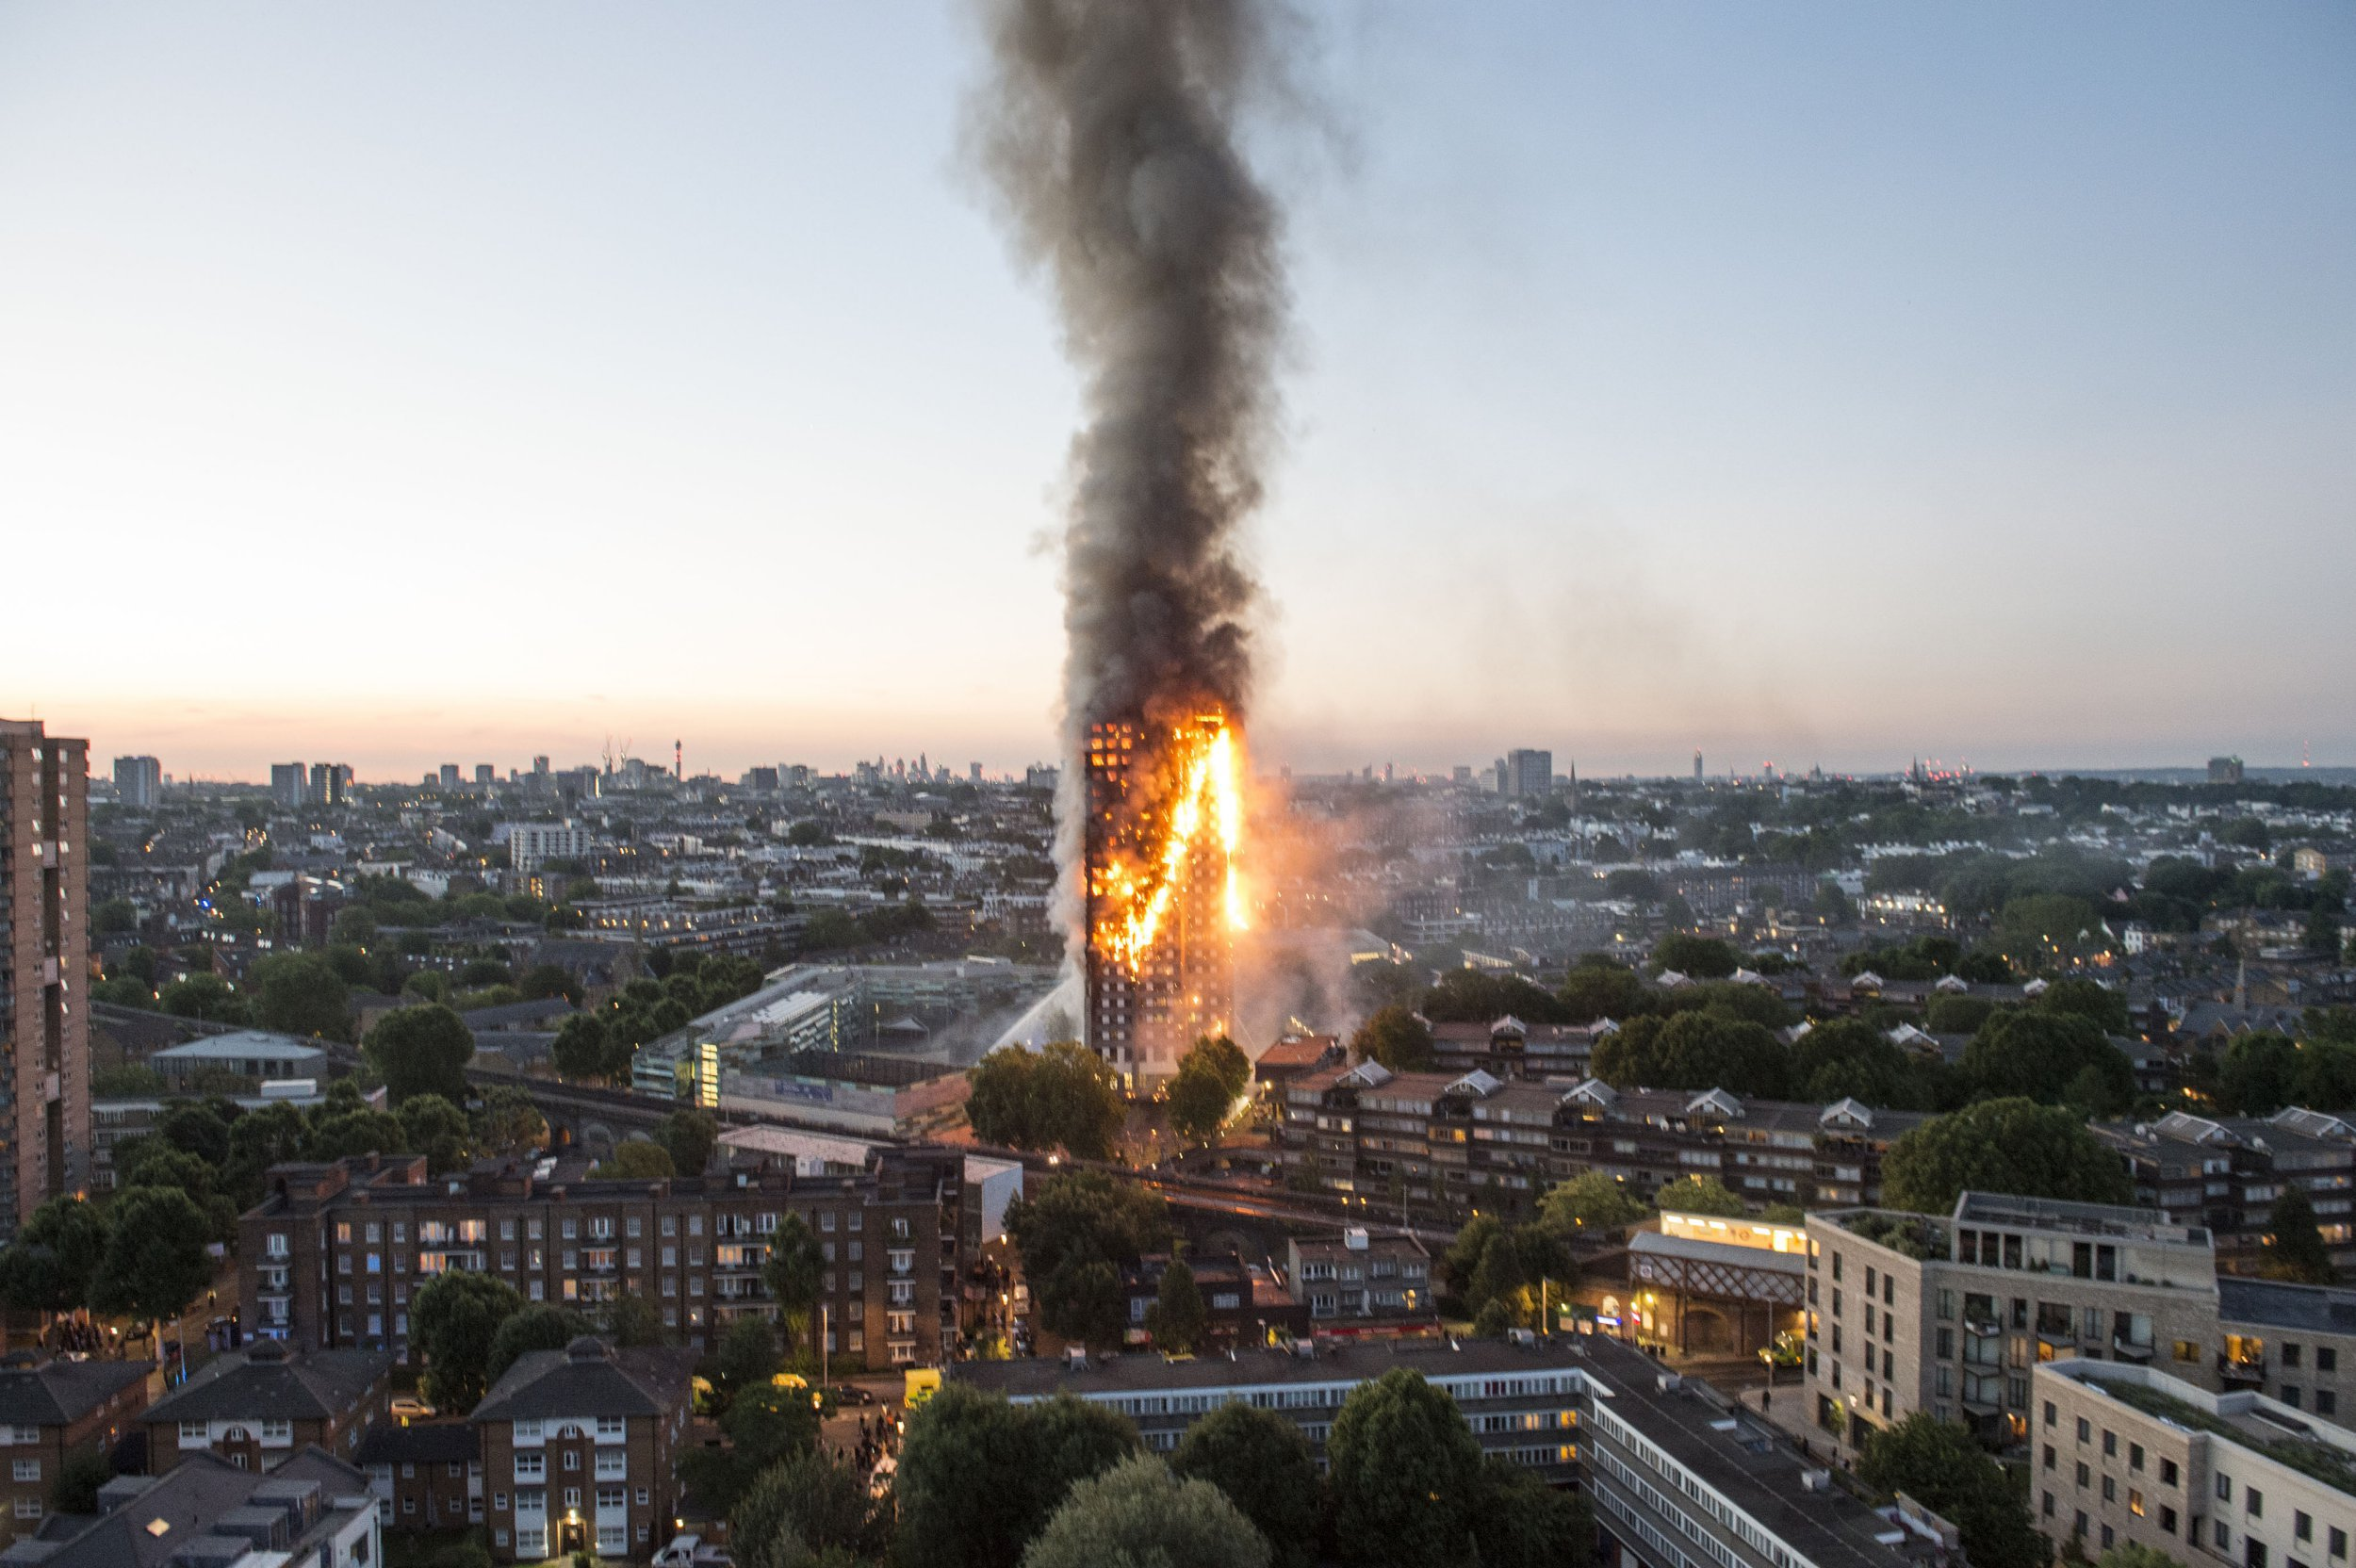 London fire: Screaming people trapped as blaze engulfs 27-storey Grenfell Tower in Notting Hill